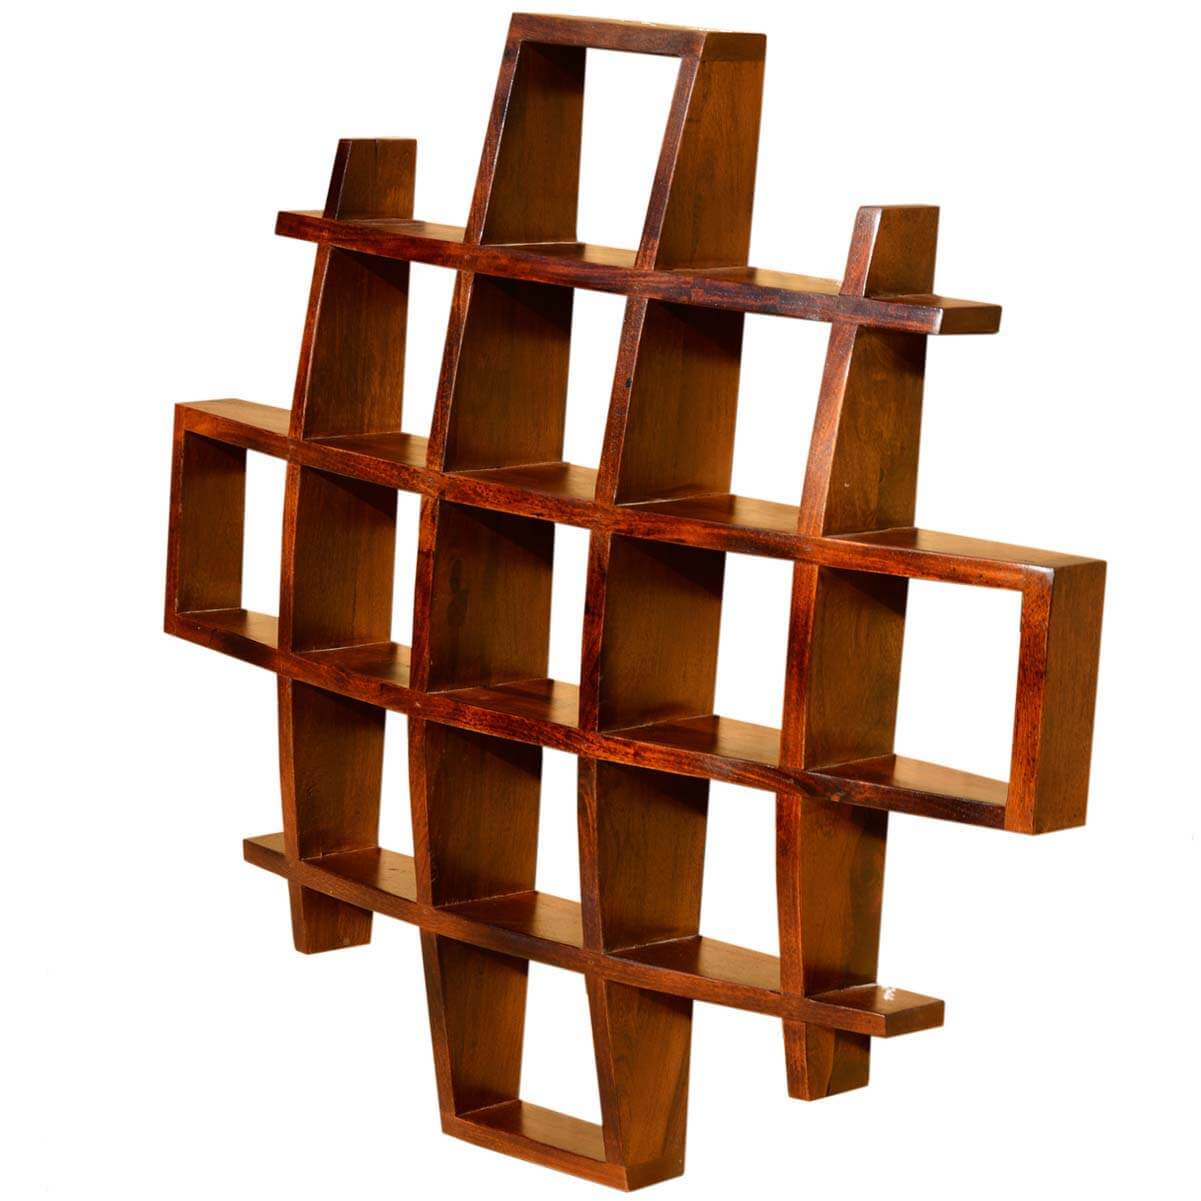 Contemporary Wood Wall Decor : Contemporary wood display wall hanging shelves home decor